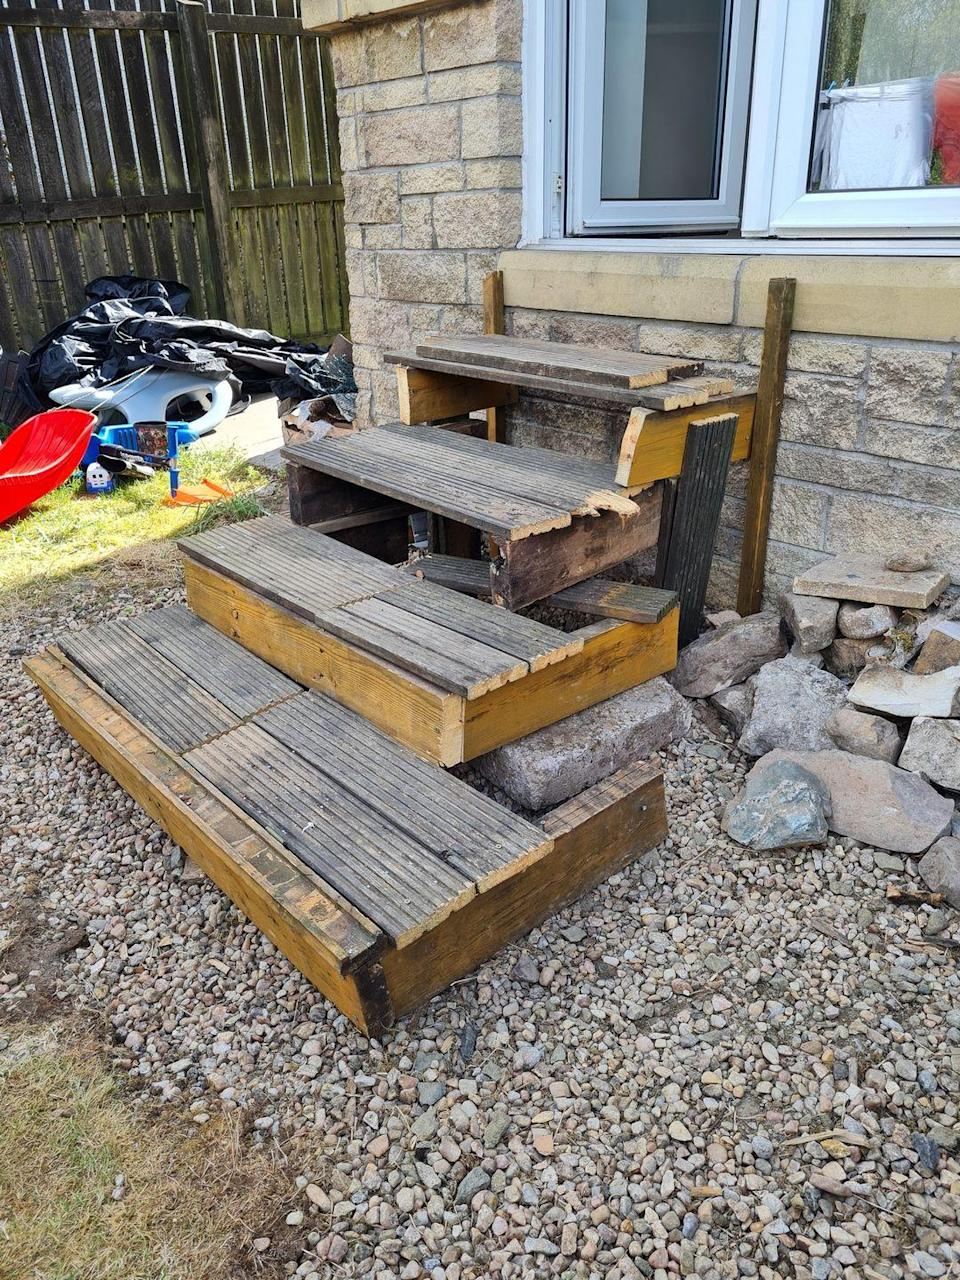 <p>Despite wanting to design pretty stairs leading from the patio, Karen Sands' homemade steps were anything but safe. She might have saved money doing them on her own, but some jobs are better left to the experts! <br></p>